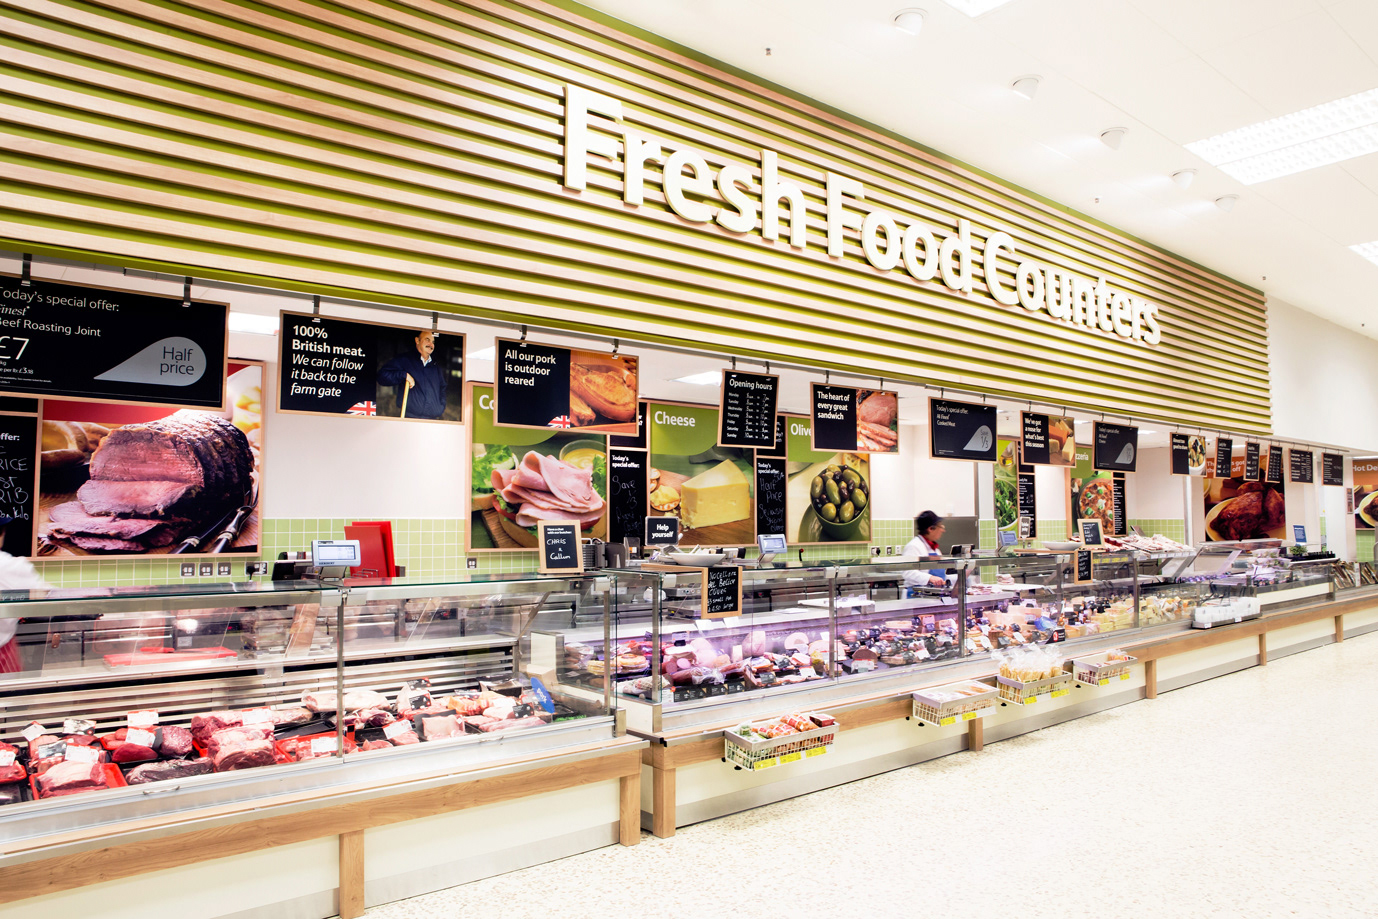 tesco retail business analysis Tesco plc business analysis - the assignment will be as analysis of the uk grocery retail industry - analysis of the uk grocery retail.